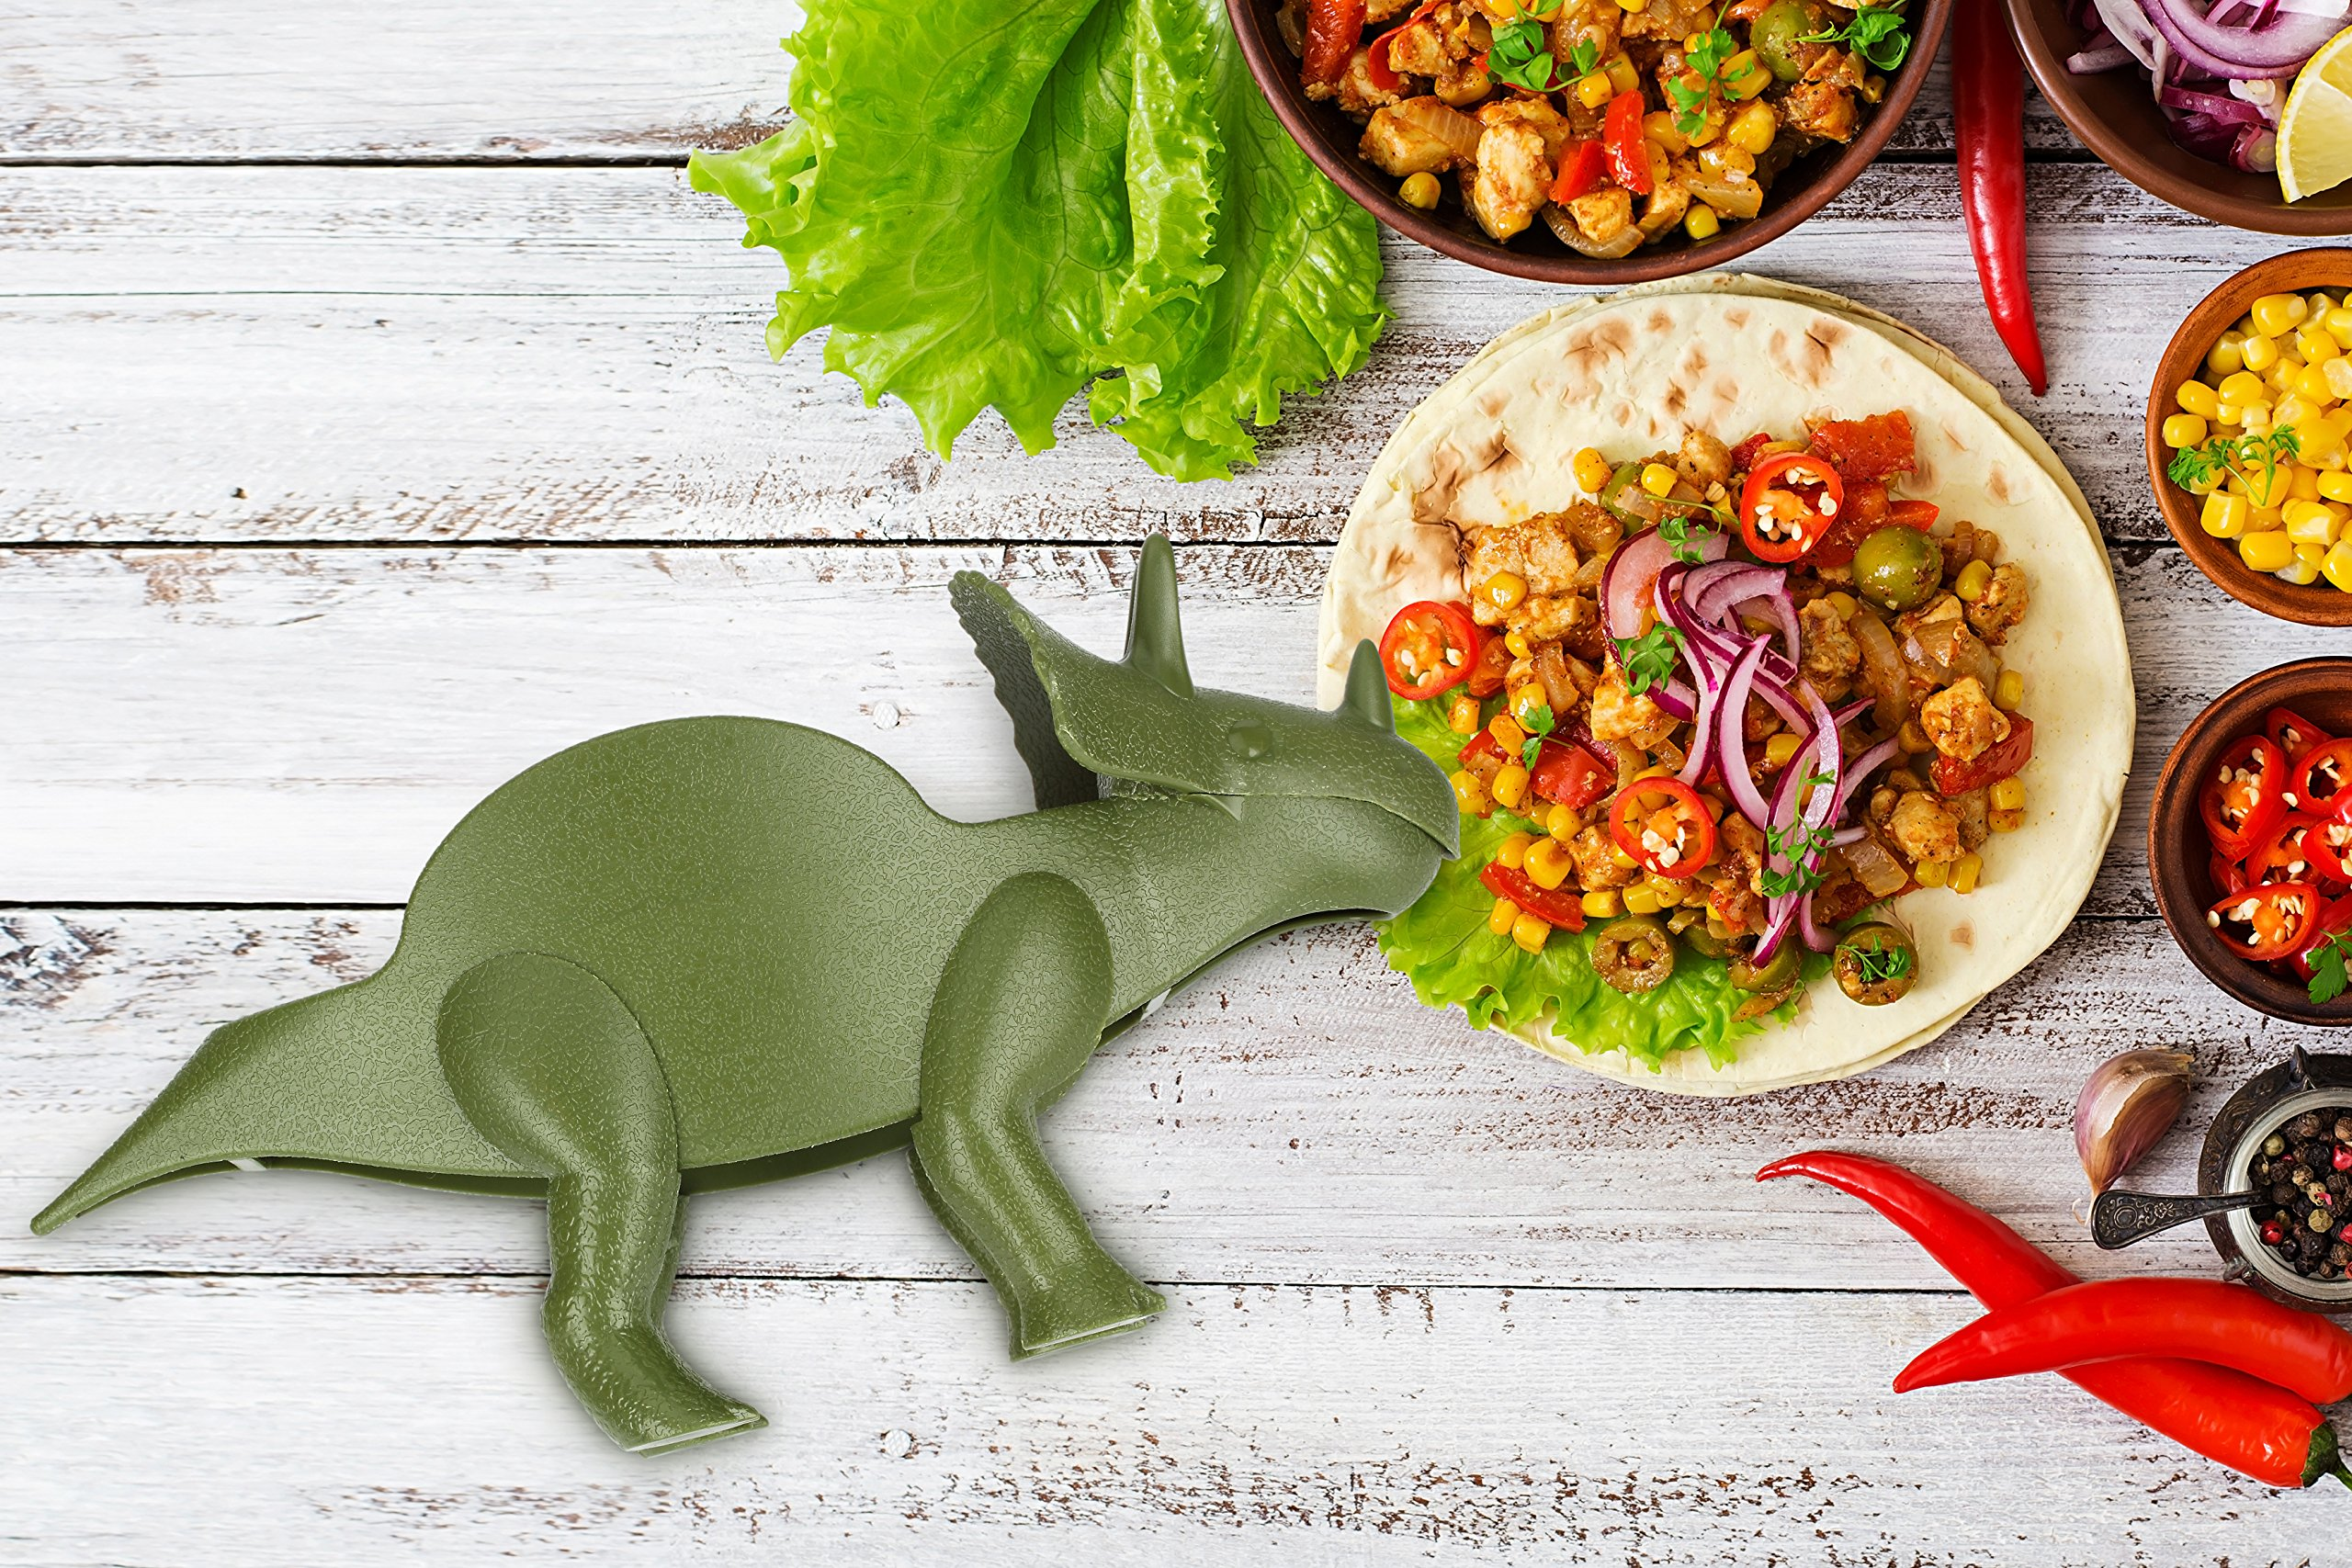 KidsFunwares TriceraTACO Taco Holder - The Ultimate Prehistoric Taco Stand for Jurassic Taco Tuesdays and Dinosaur Parties - Holds 2 Tacos - The Perfect Gift for Kids and Kidults that Love Dinosaurs by KidsFunwares (Image #14)